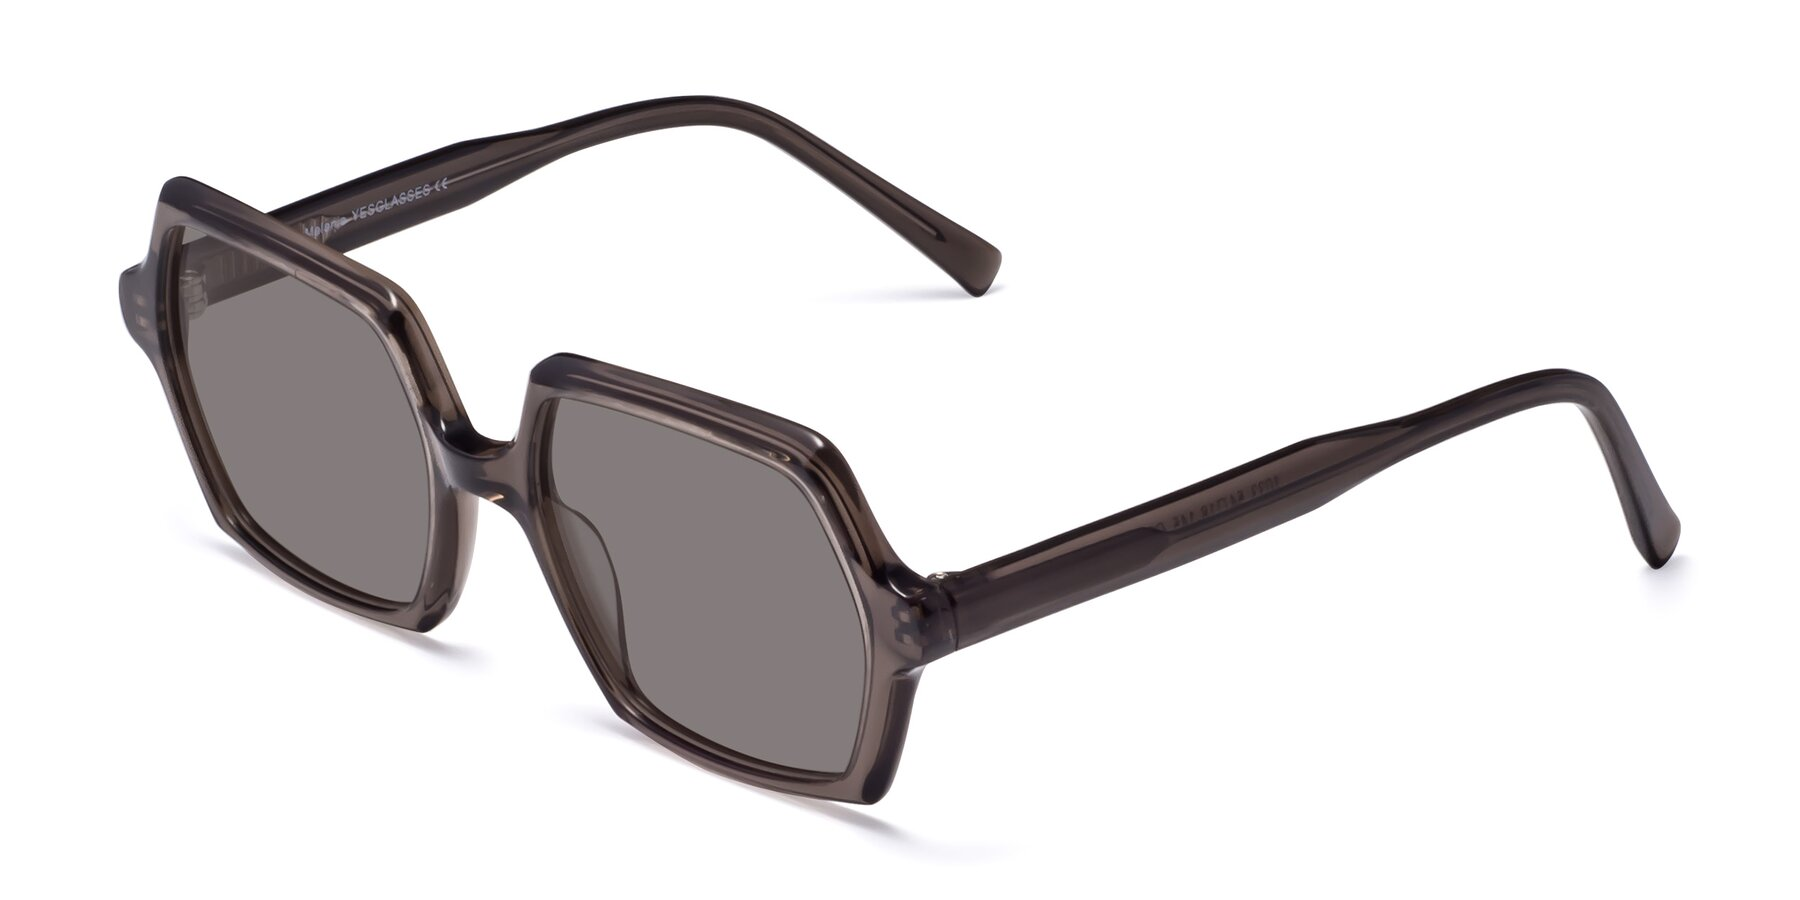 Angle of Melanie in Transparent Gray with Medium Gray Tinted Lenses